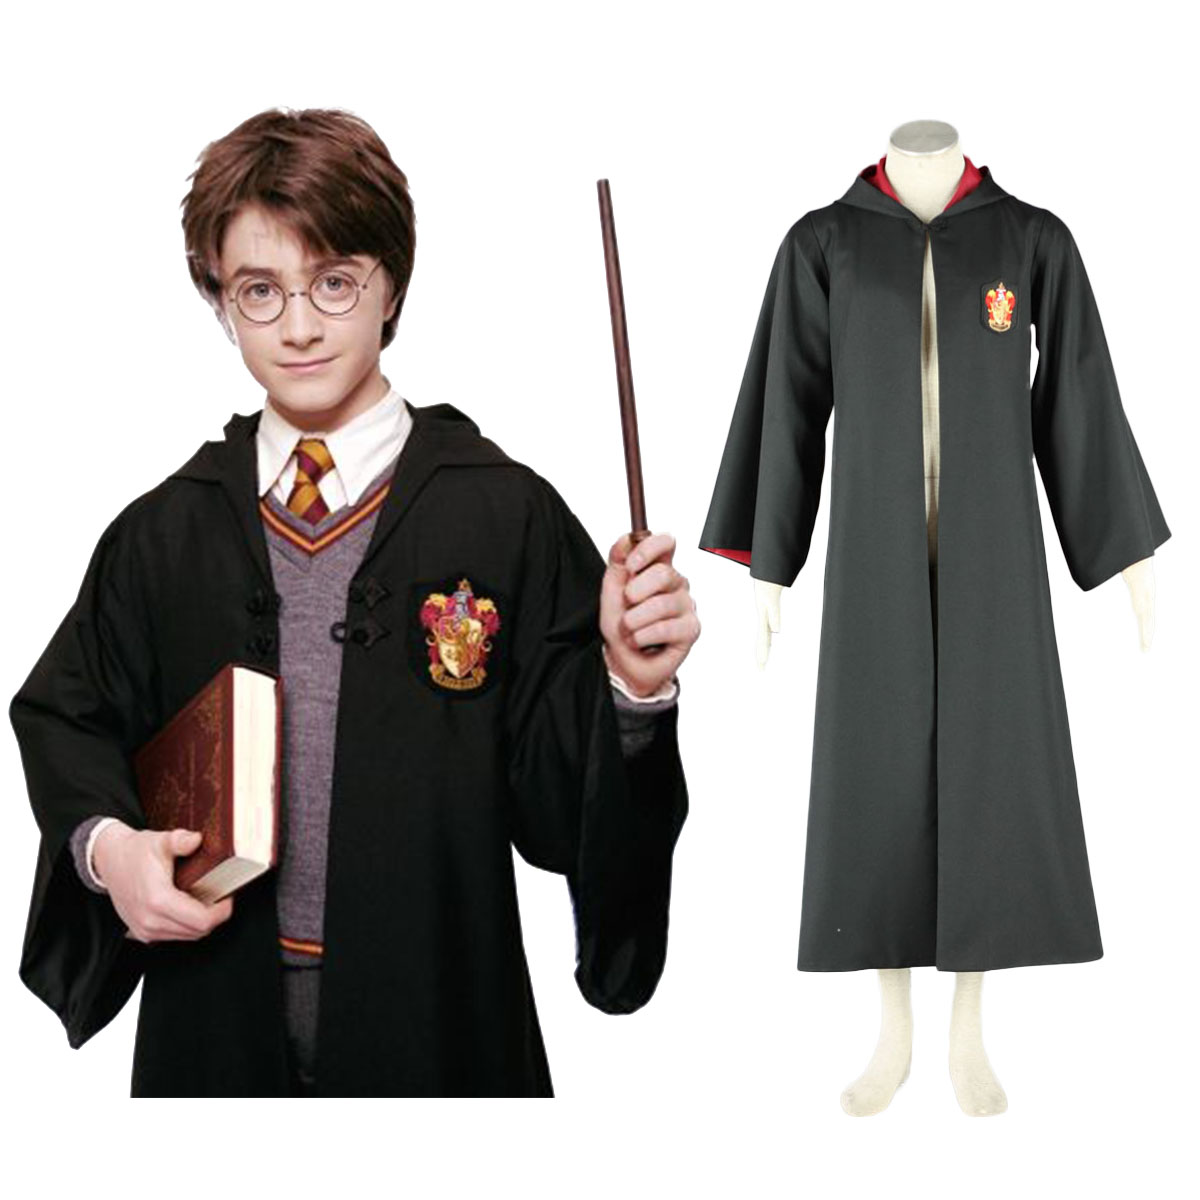 Harry Potter Gryffindor Uniform Cloak Cosplay Costumes AU